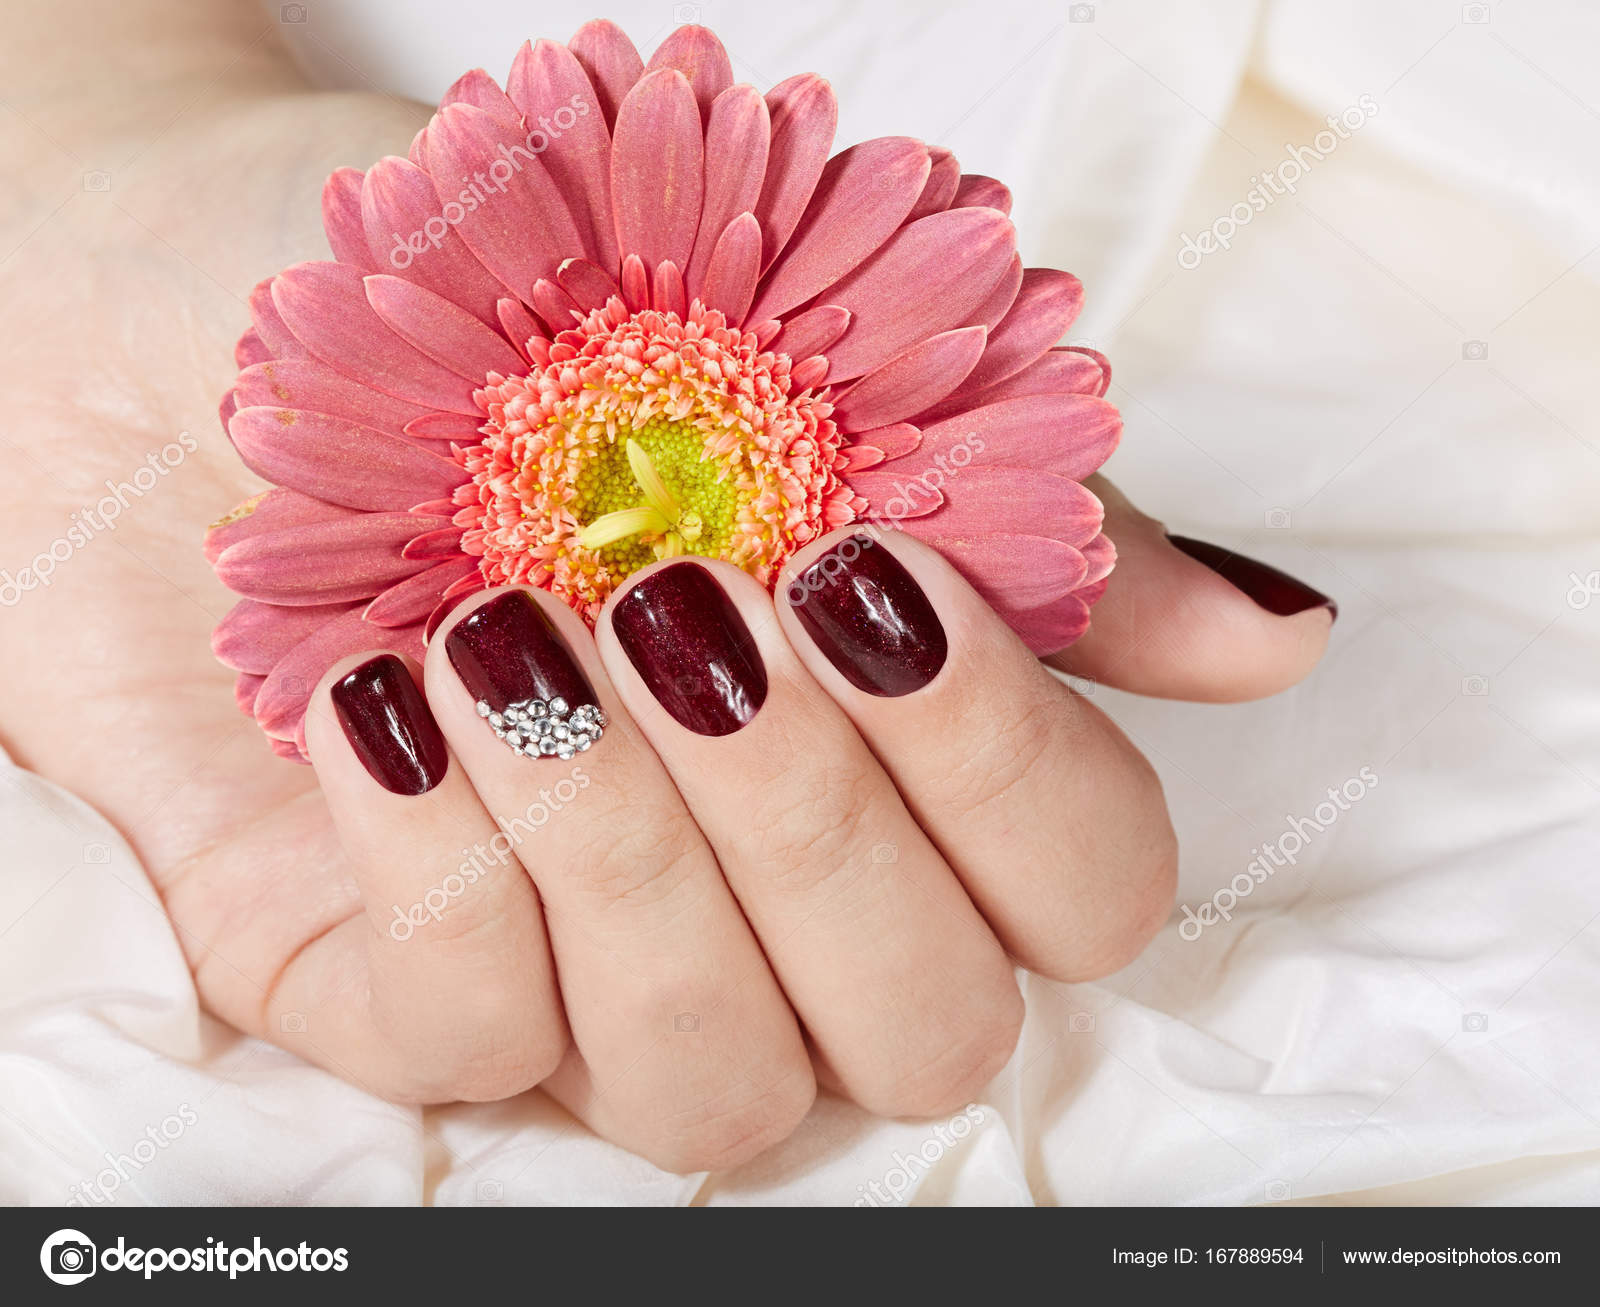 Hand with short manicured nails colored with dark purple nail polish ...